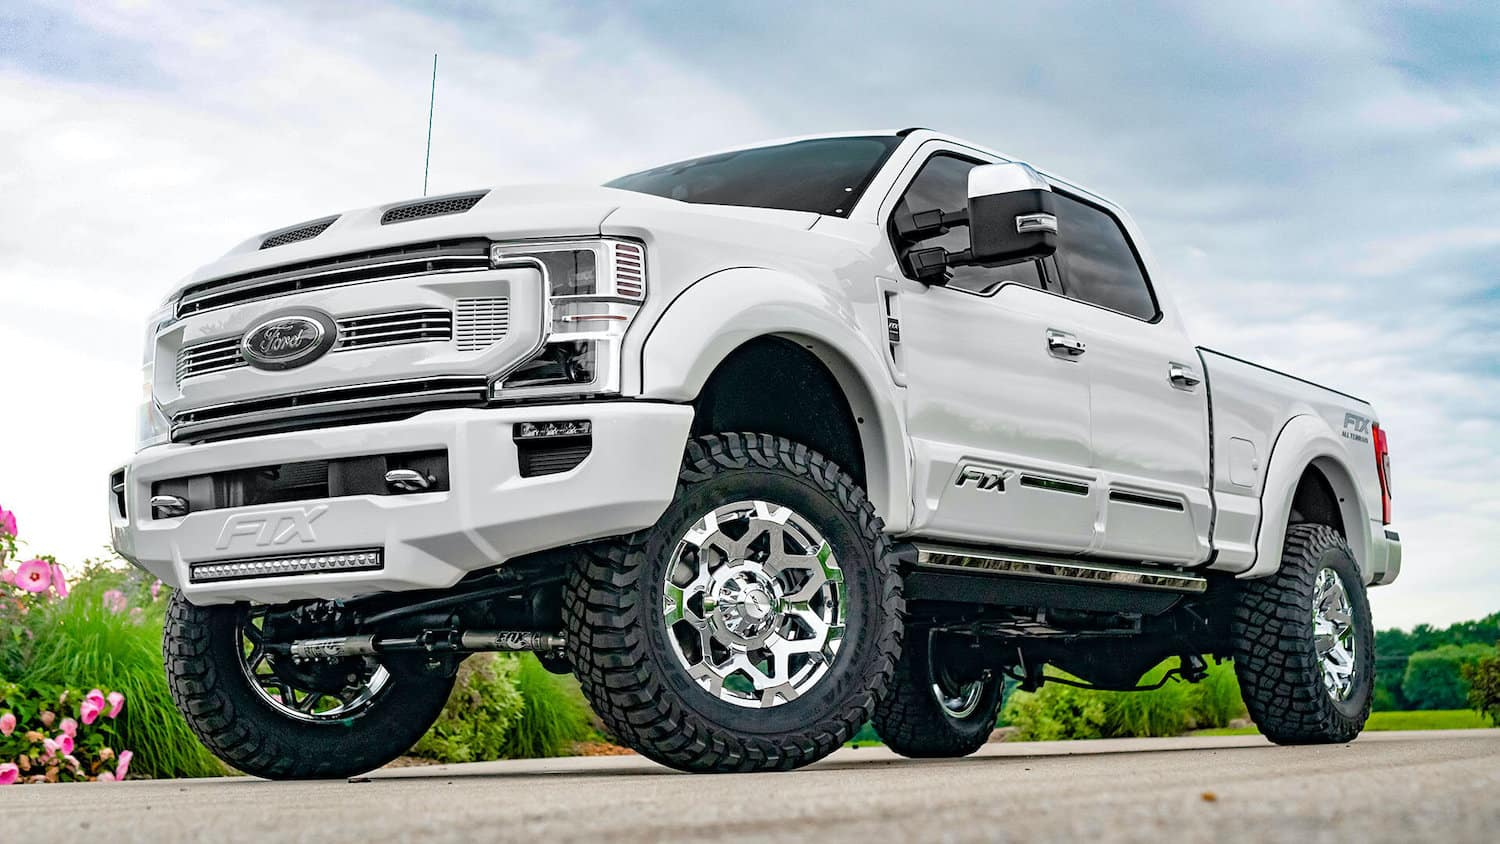 Sewell Ford Tuscany Motor Co. Dealer in West Texas FTX F-250 Edition